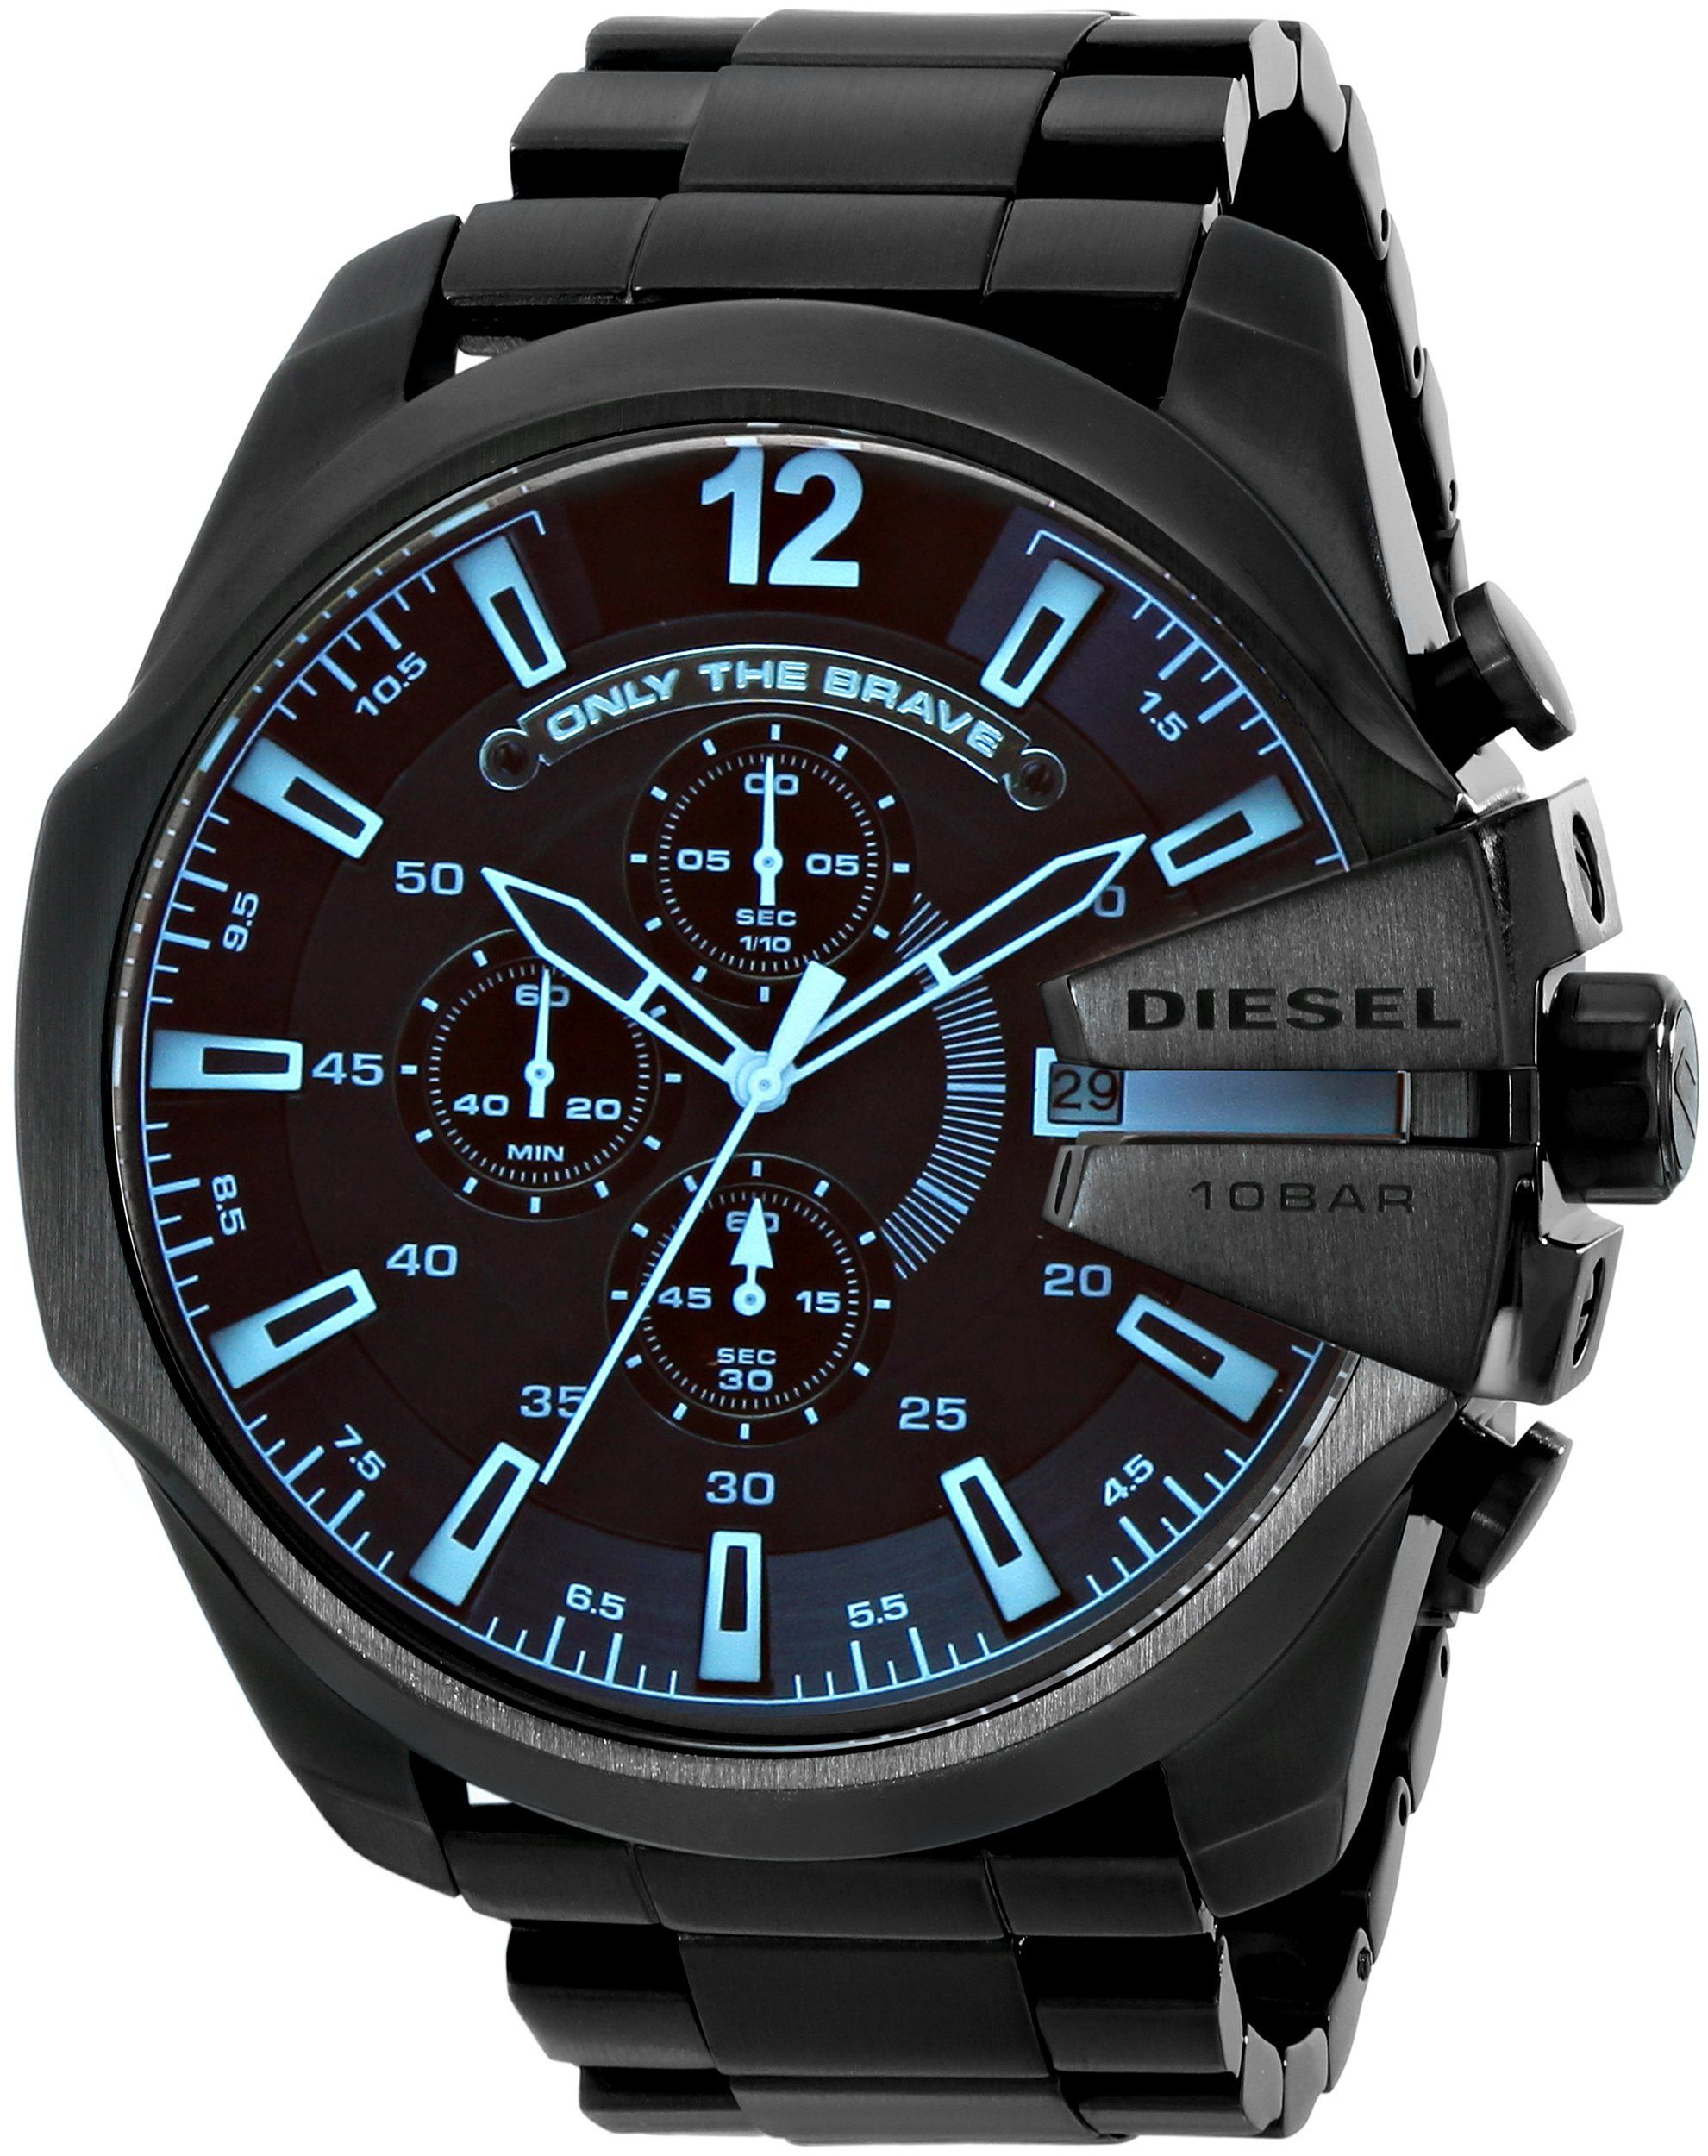 506cdc12aa8 Amazon.com  Diesel Men s DZ4318 Diesel Chief Series Analog Display Analog  Quartz Black Watch  Diesel  Watches